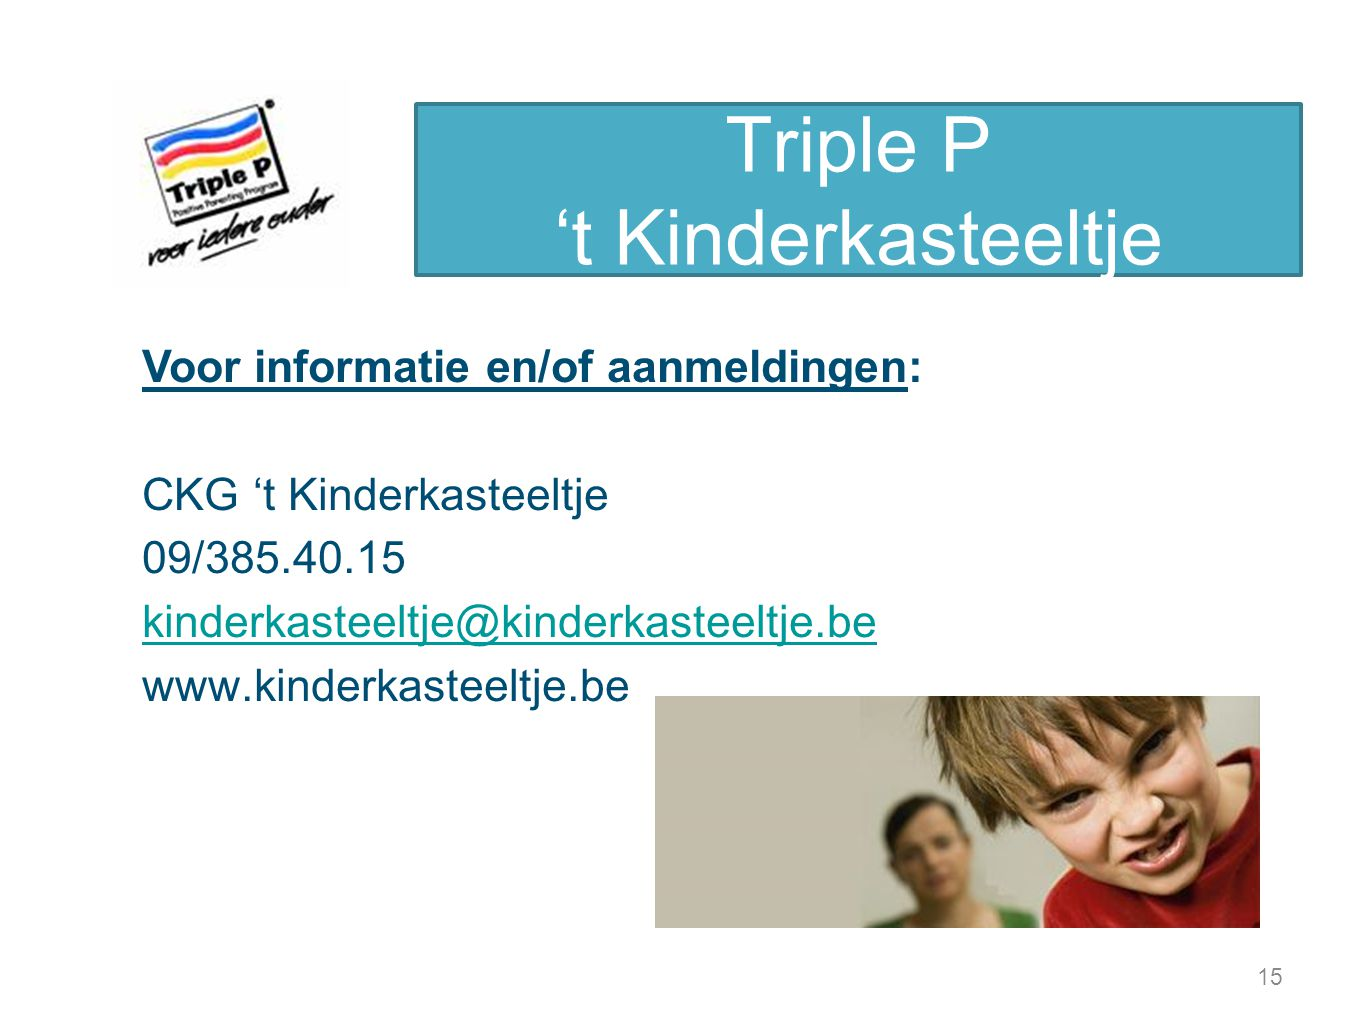 Triple P 't Kinderkasteeltje